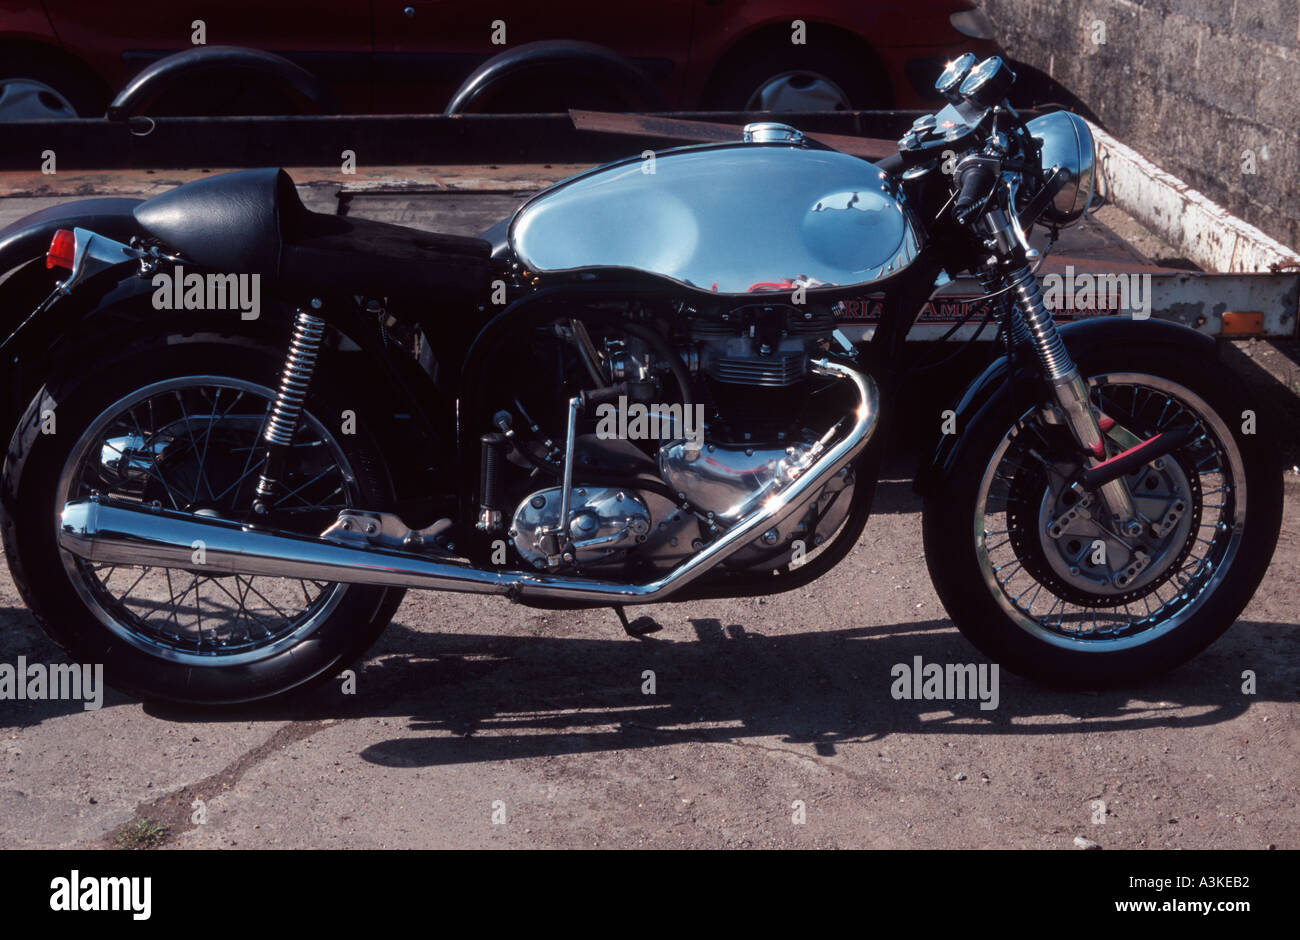 Chrome Cafe Racer : Sixties s triton cafe racer motorcycle triumph engine